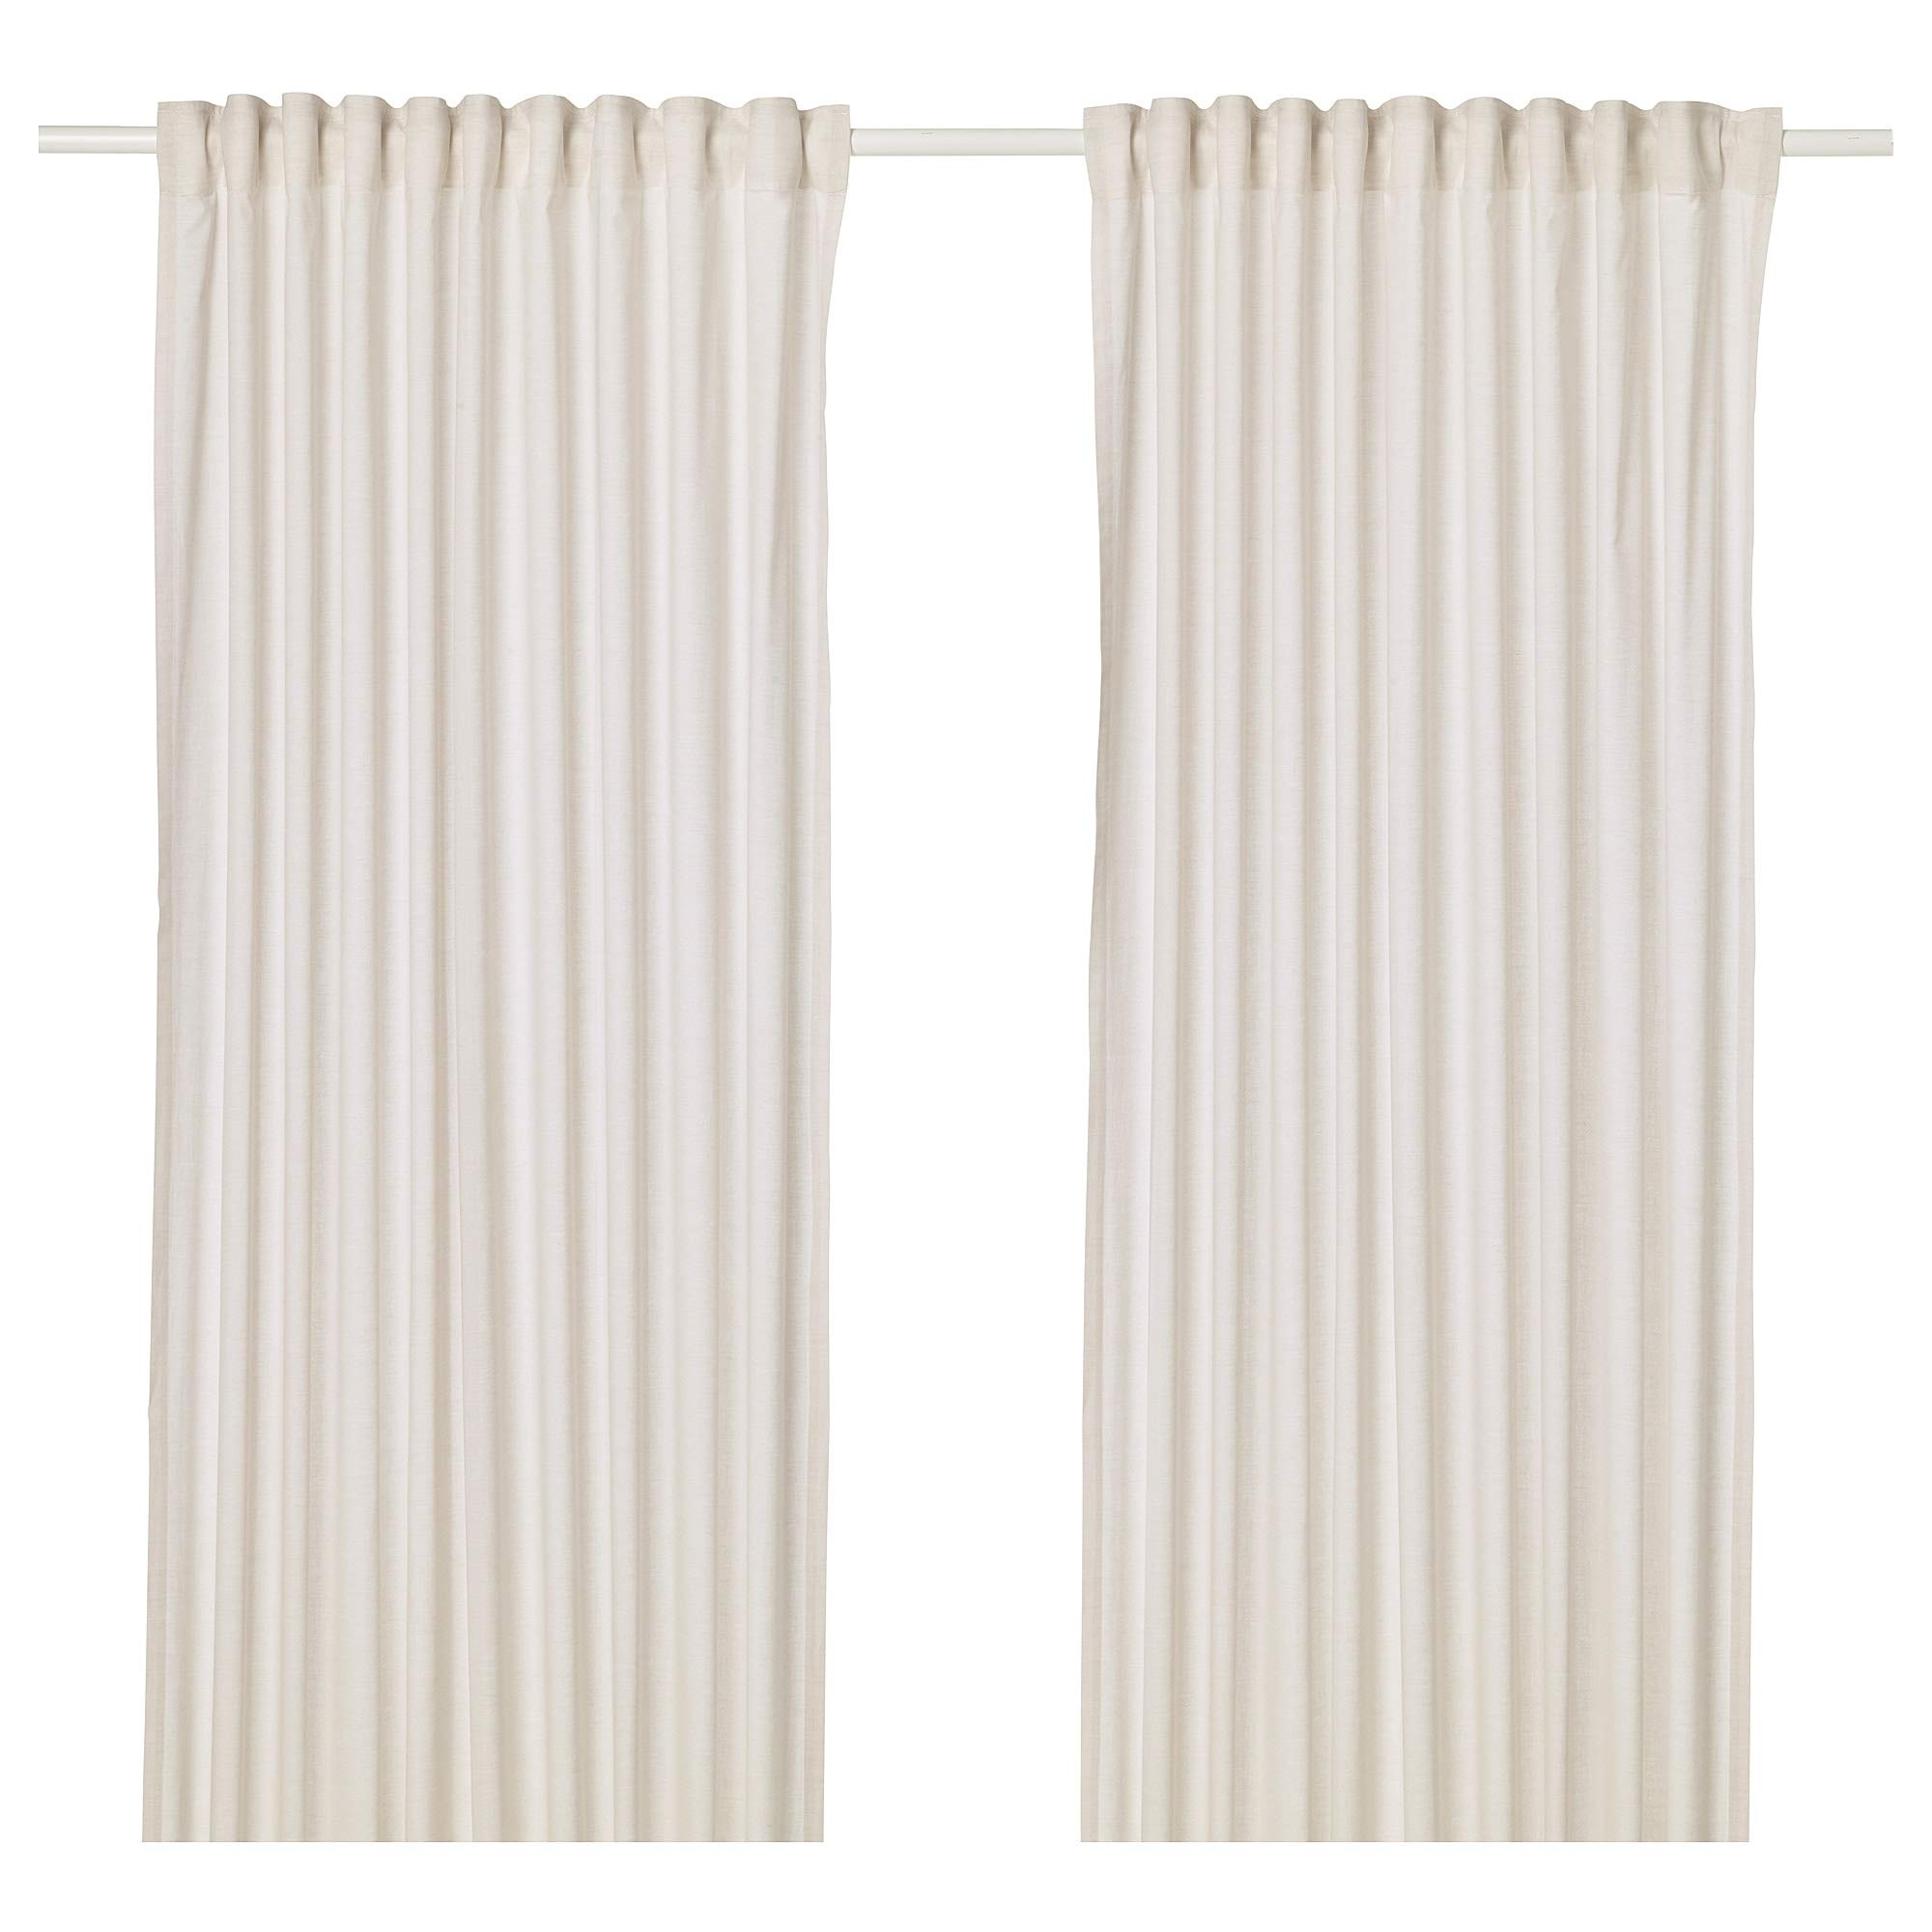 IKEA ASIA HANNALILL - Cortinas (1 par), Color Beige: Amazon.es: Hogar